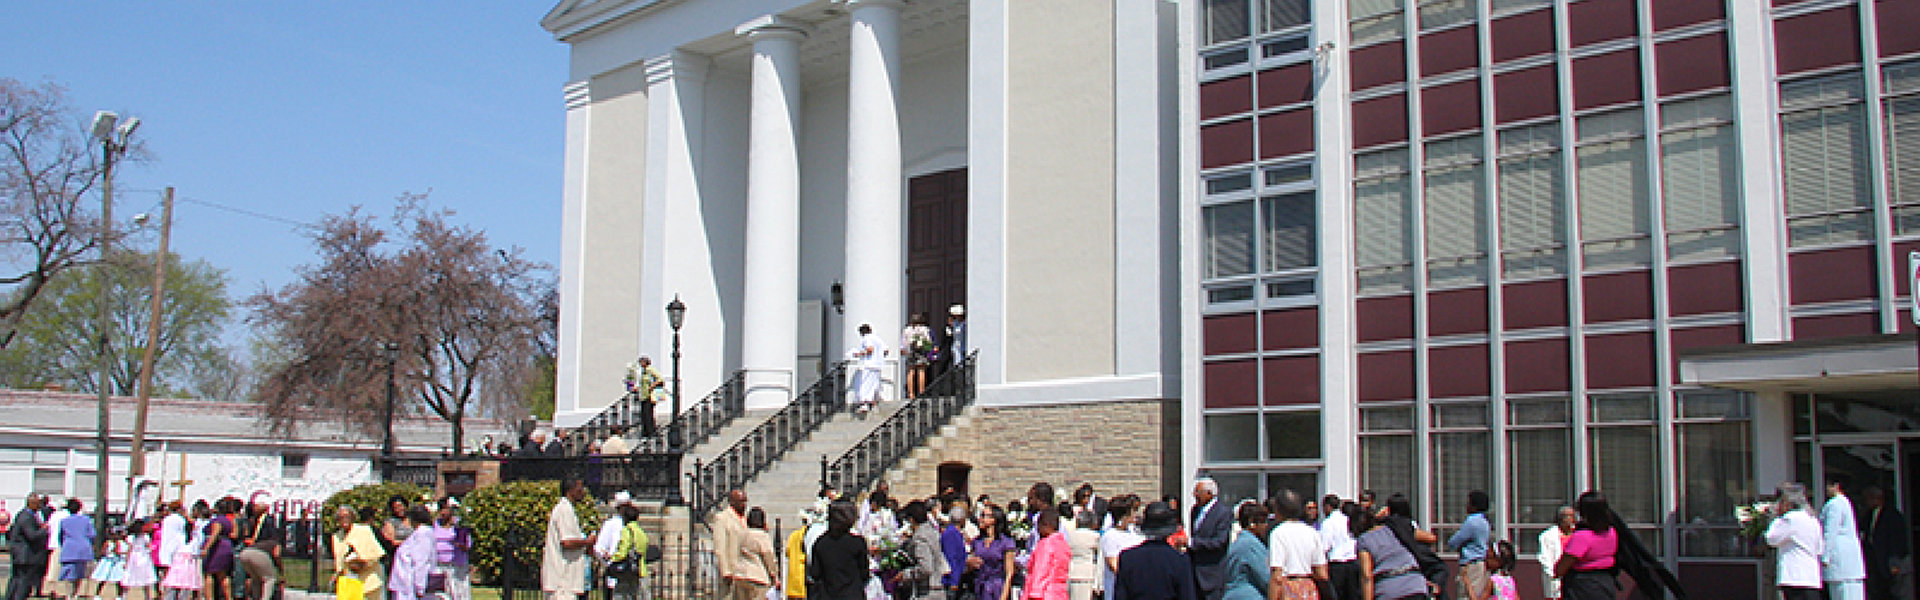 outside view of the building with people